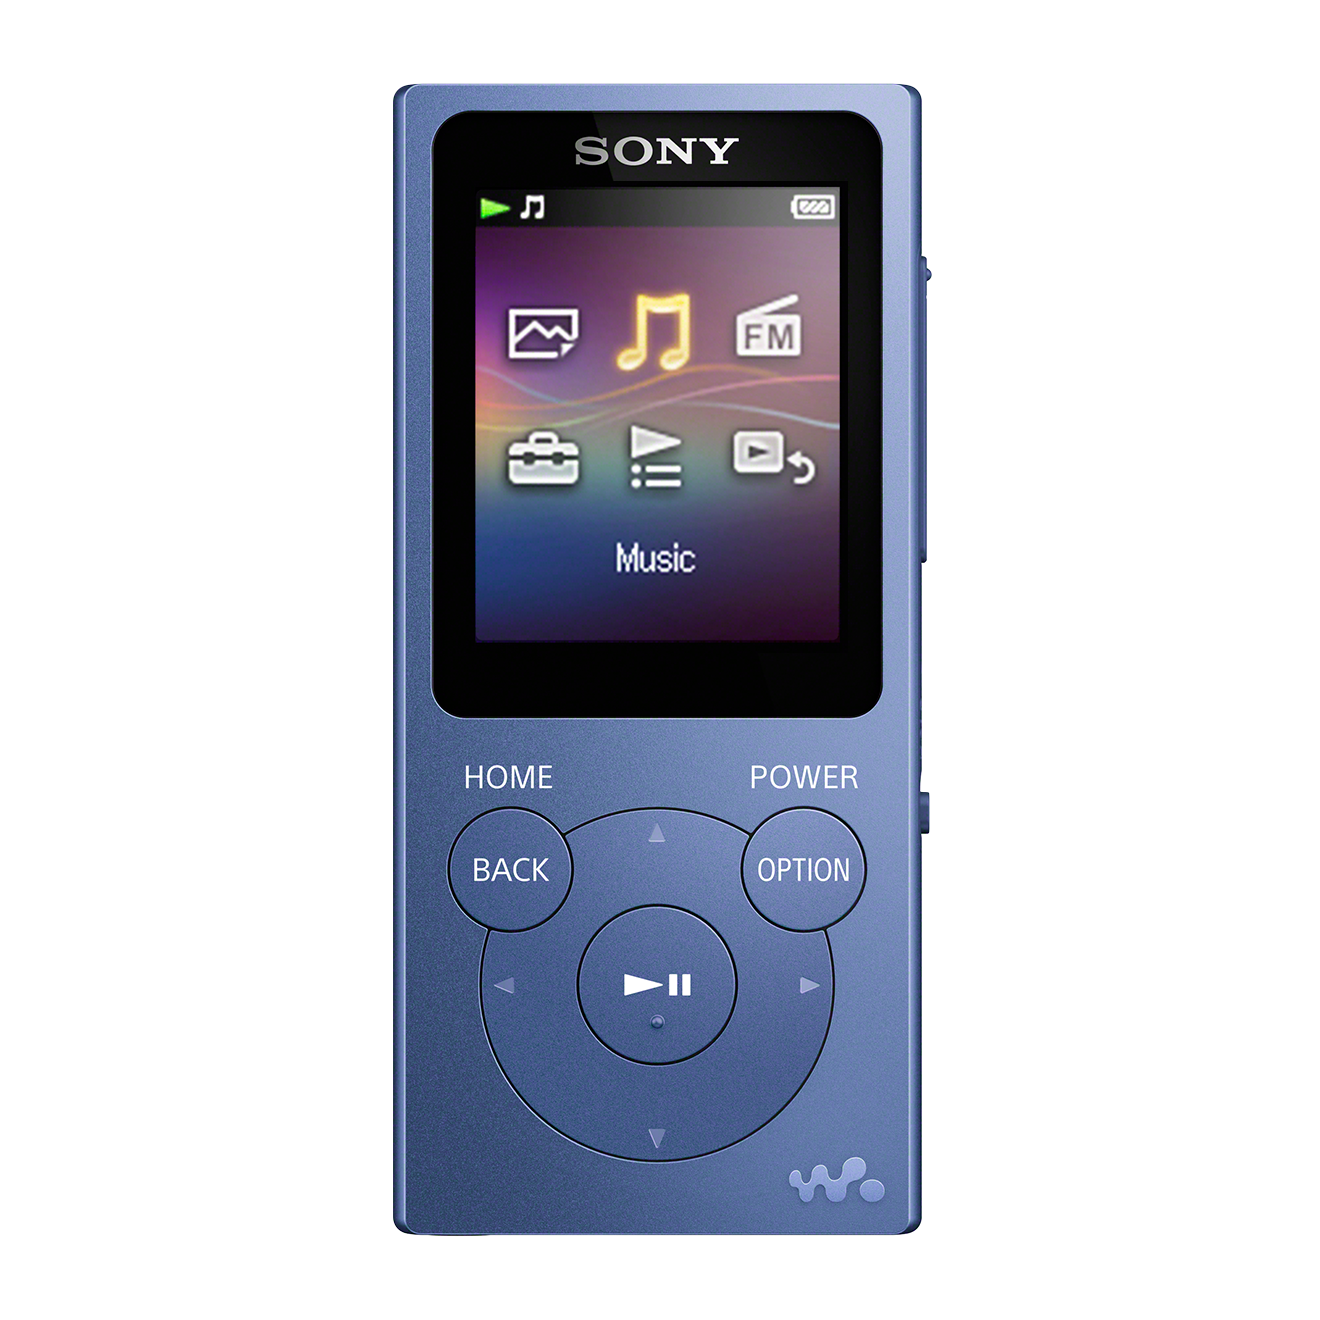 Mp3 плеер walkman Sony NWE394L.EE mp3 плеер sony nw e394 flash 8гб красный [nwe394r ee]